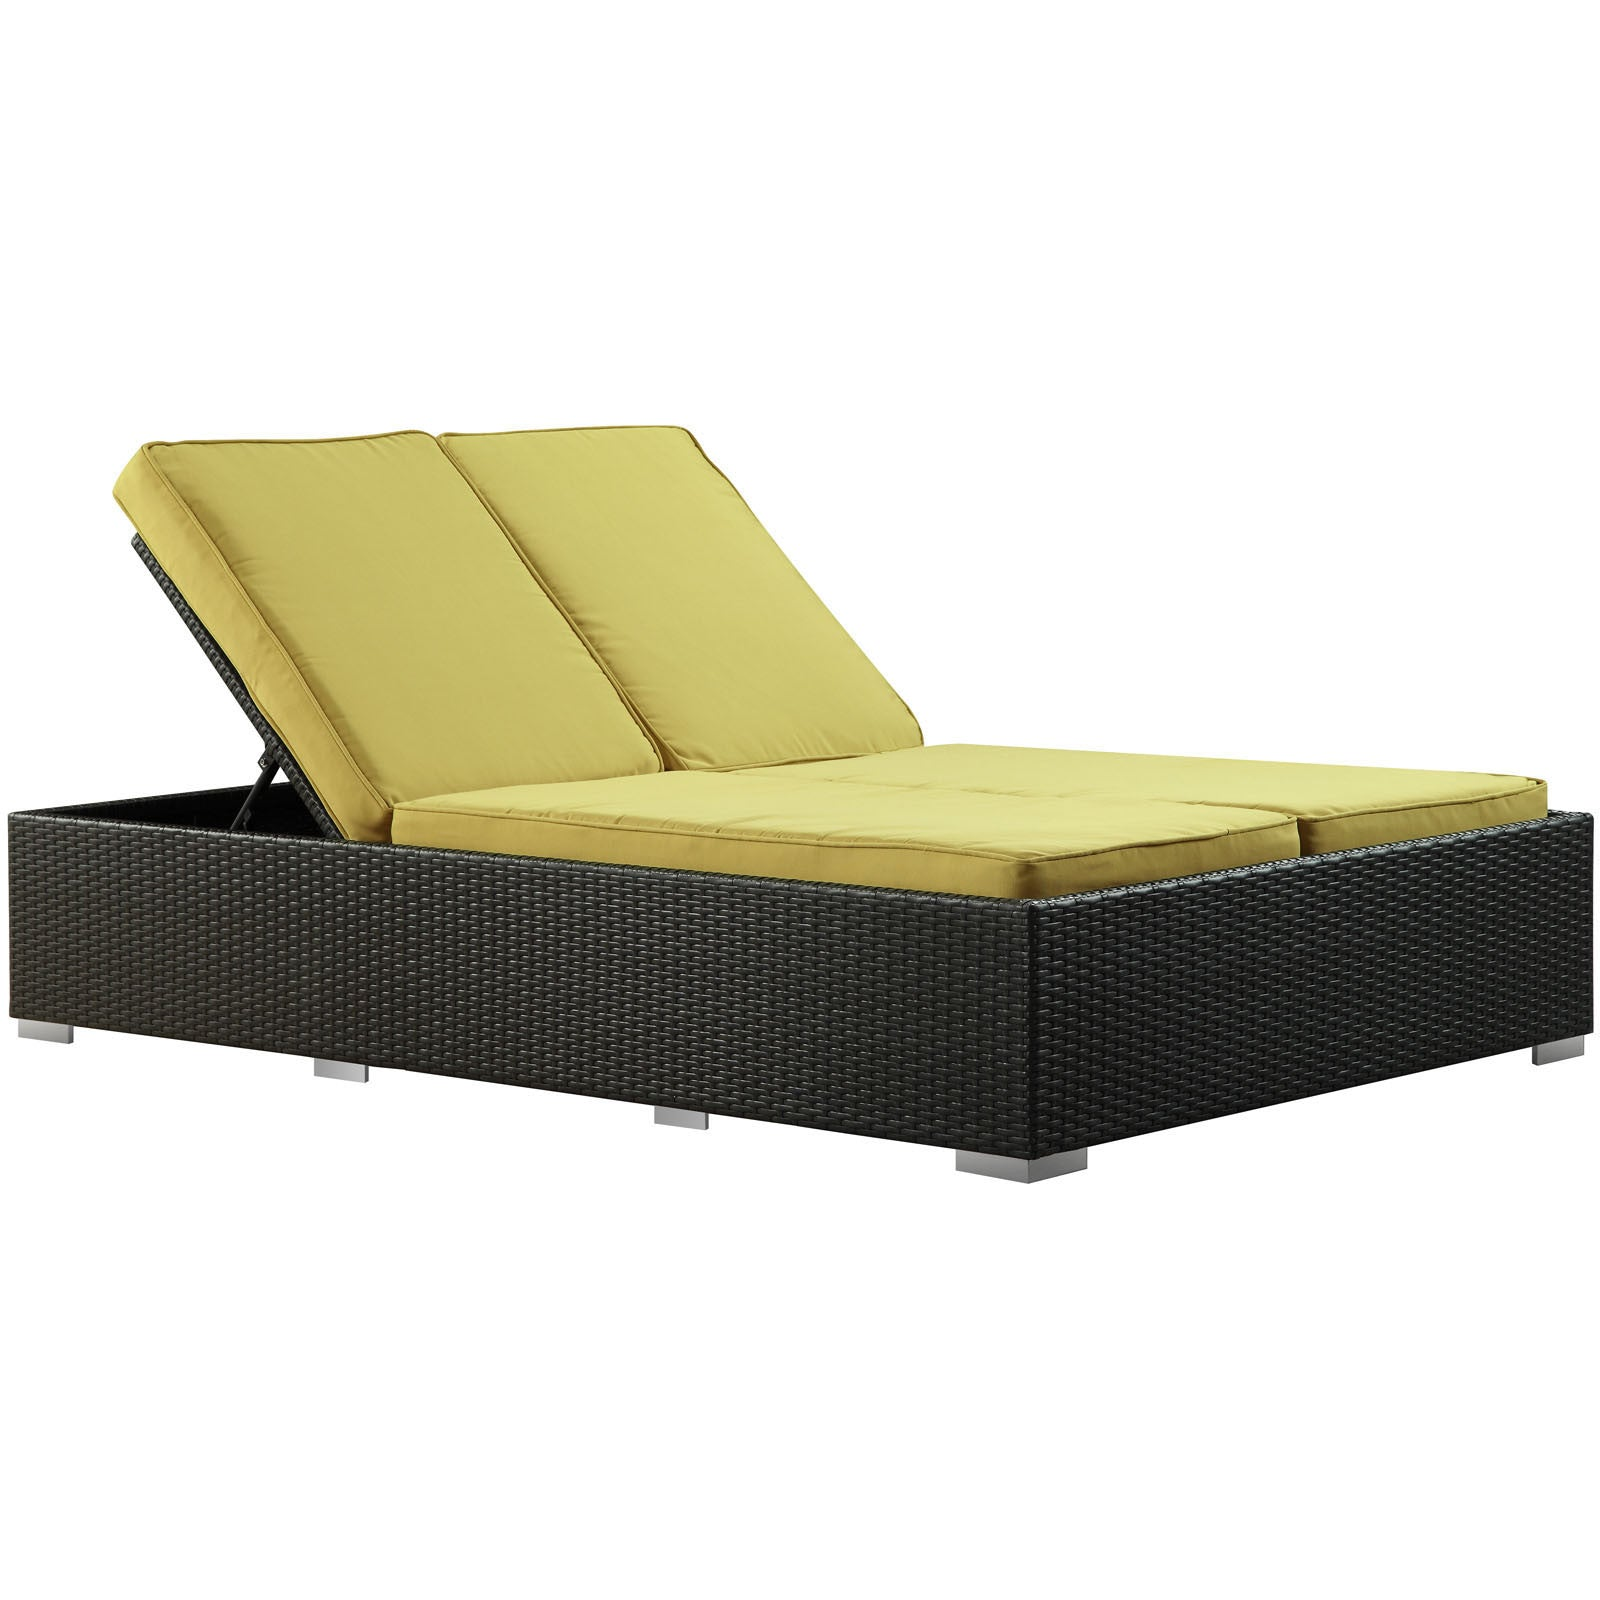 EVINCE OUTDOOR PATIO CHAISE Euro Living Furniture : EEI 787 EXP PER from www.eurolivingfurniture.com size 1600 x 1600 jpeg 170kB